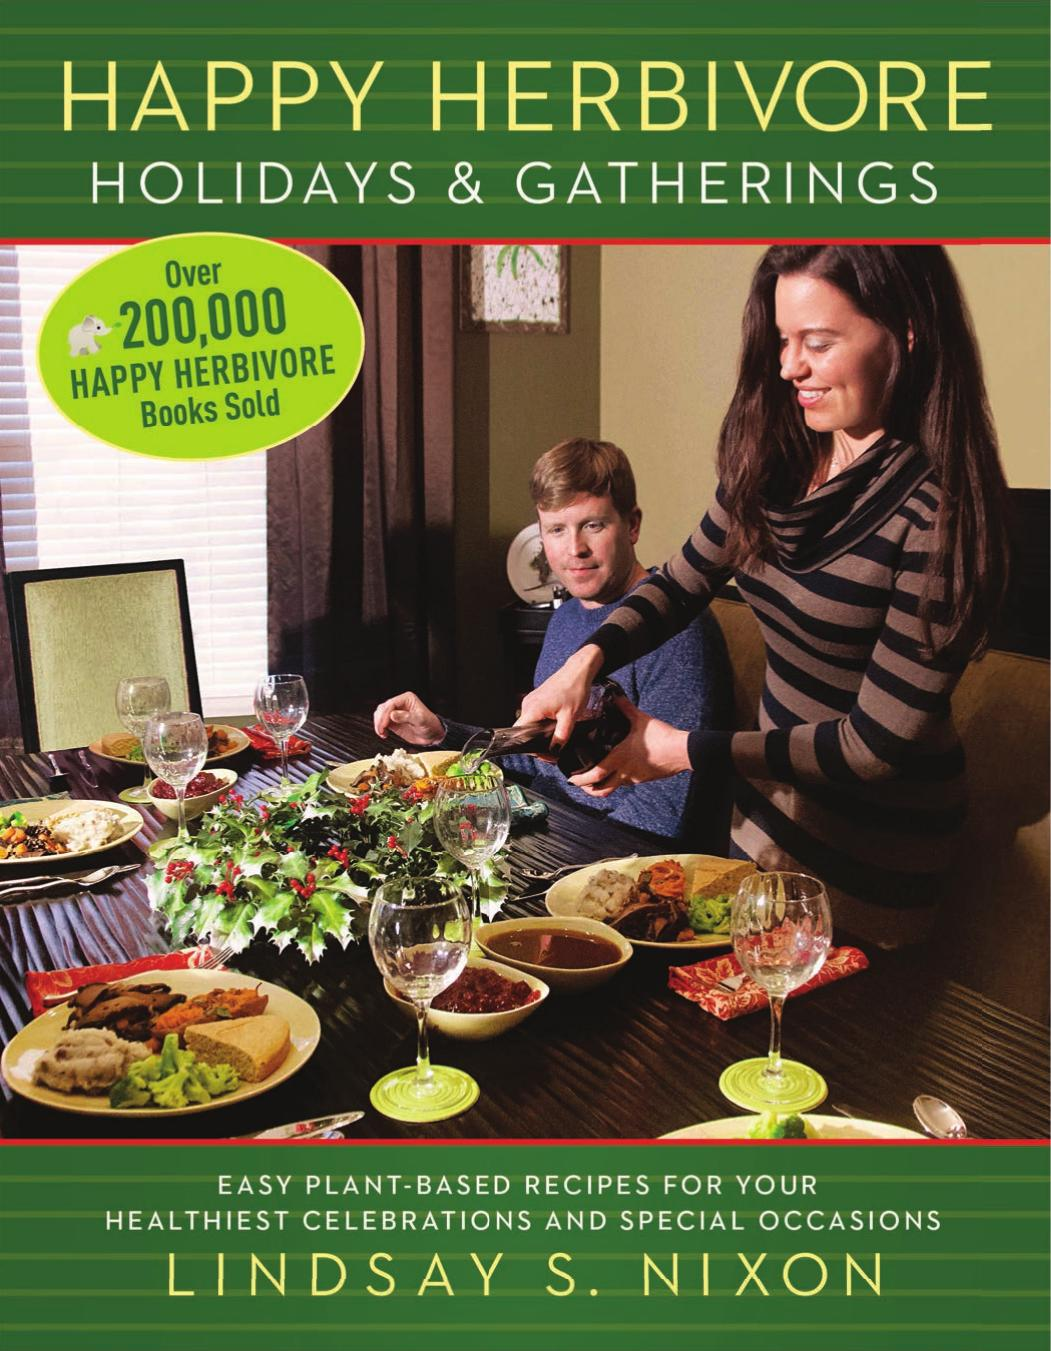 Happy Herbivore Holidays & Gatherings: Easy Plant-Based Recipes for Your Healthiest Celebrations and Special Occasions free download